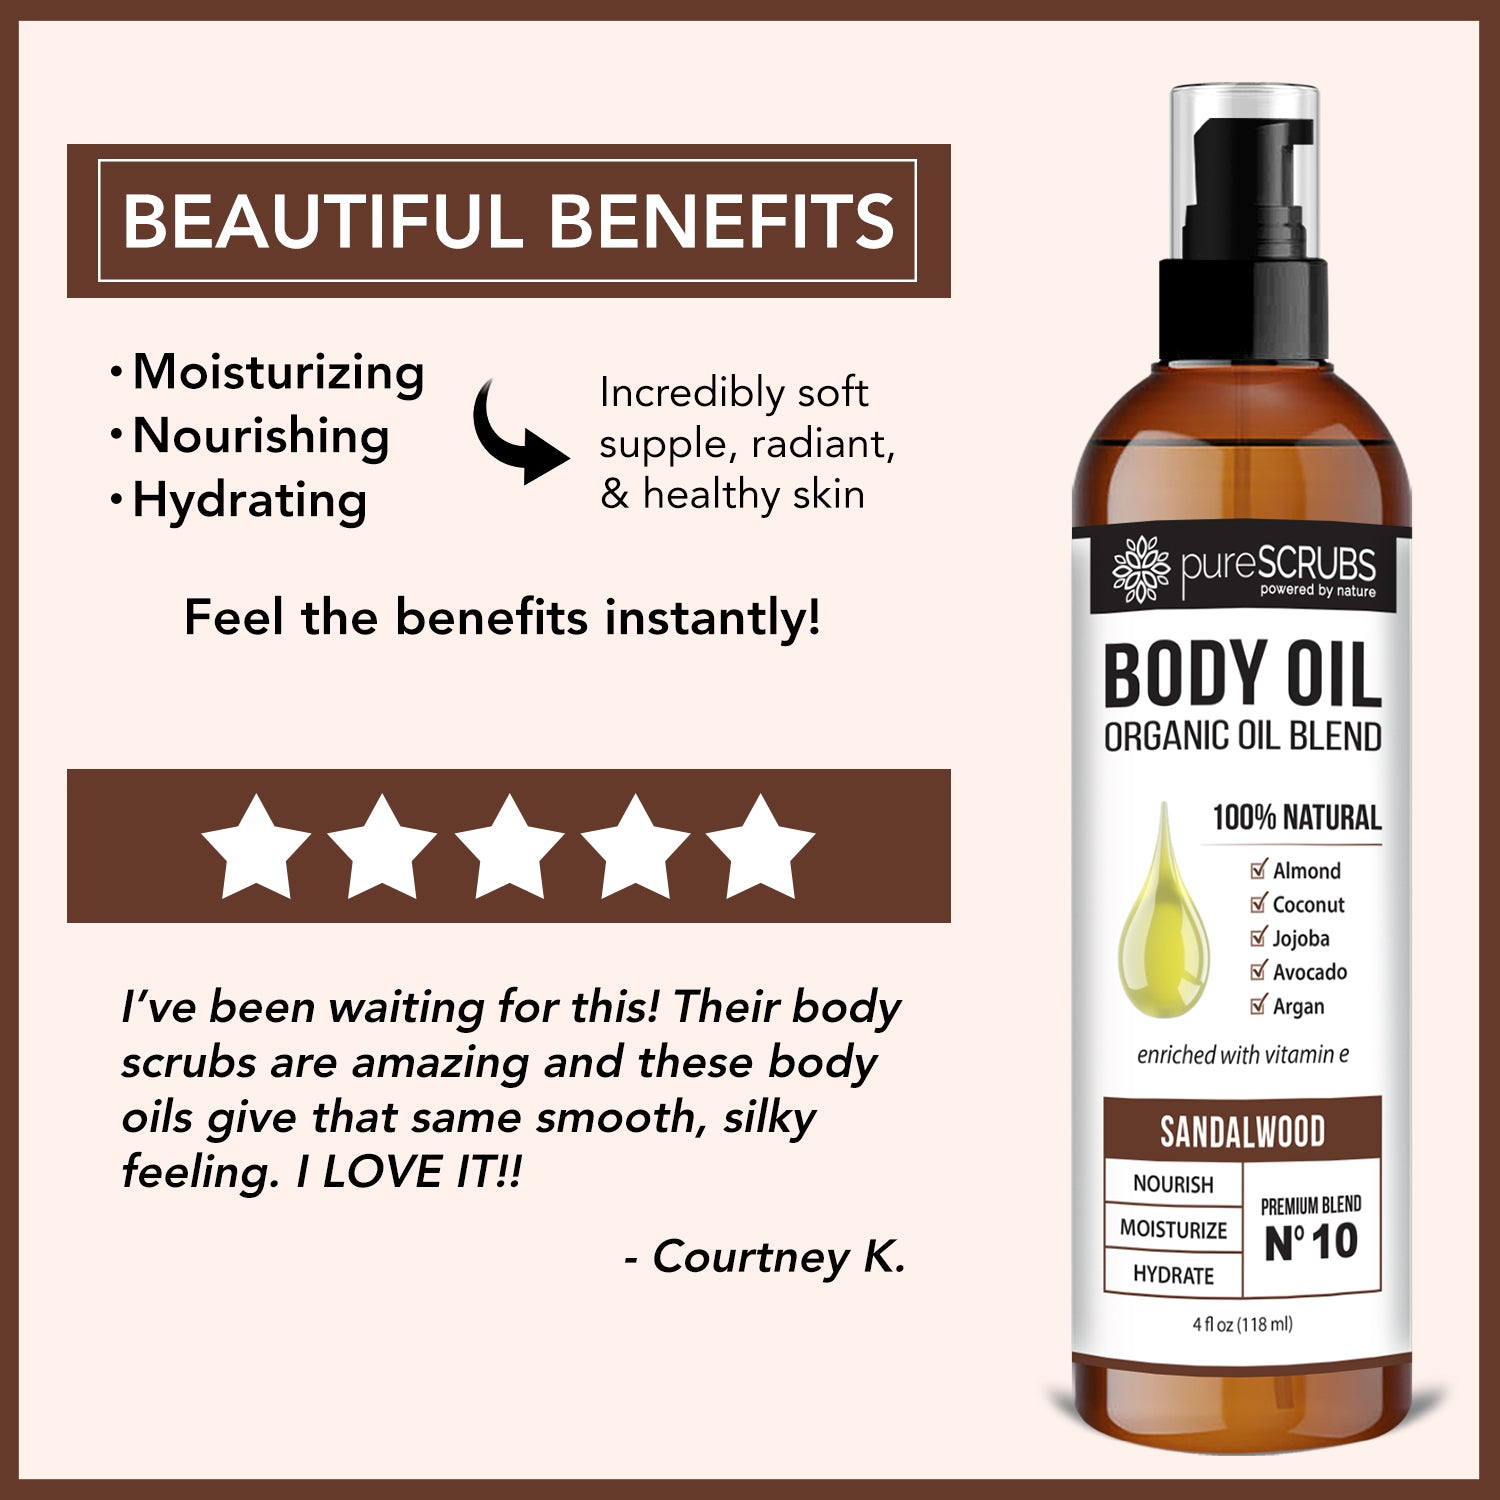 Sandalwood Body Oil / Ultra Moisturizing / Premium Blend #10